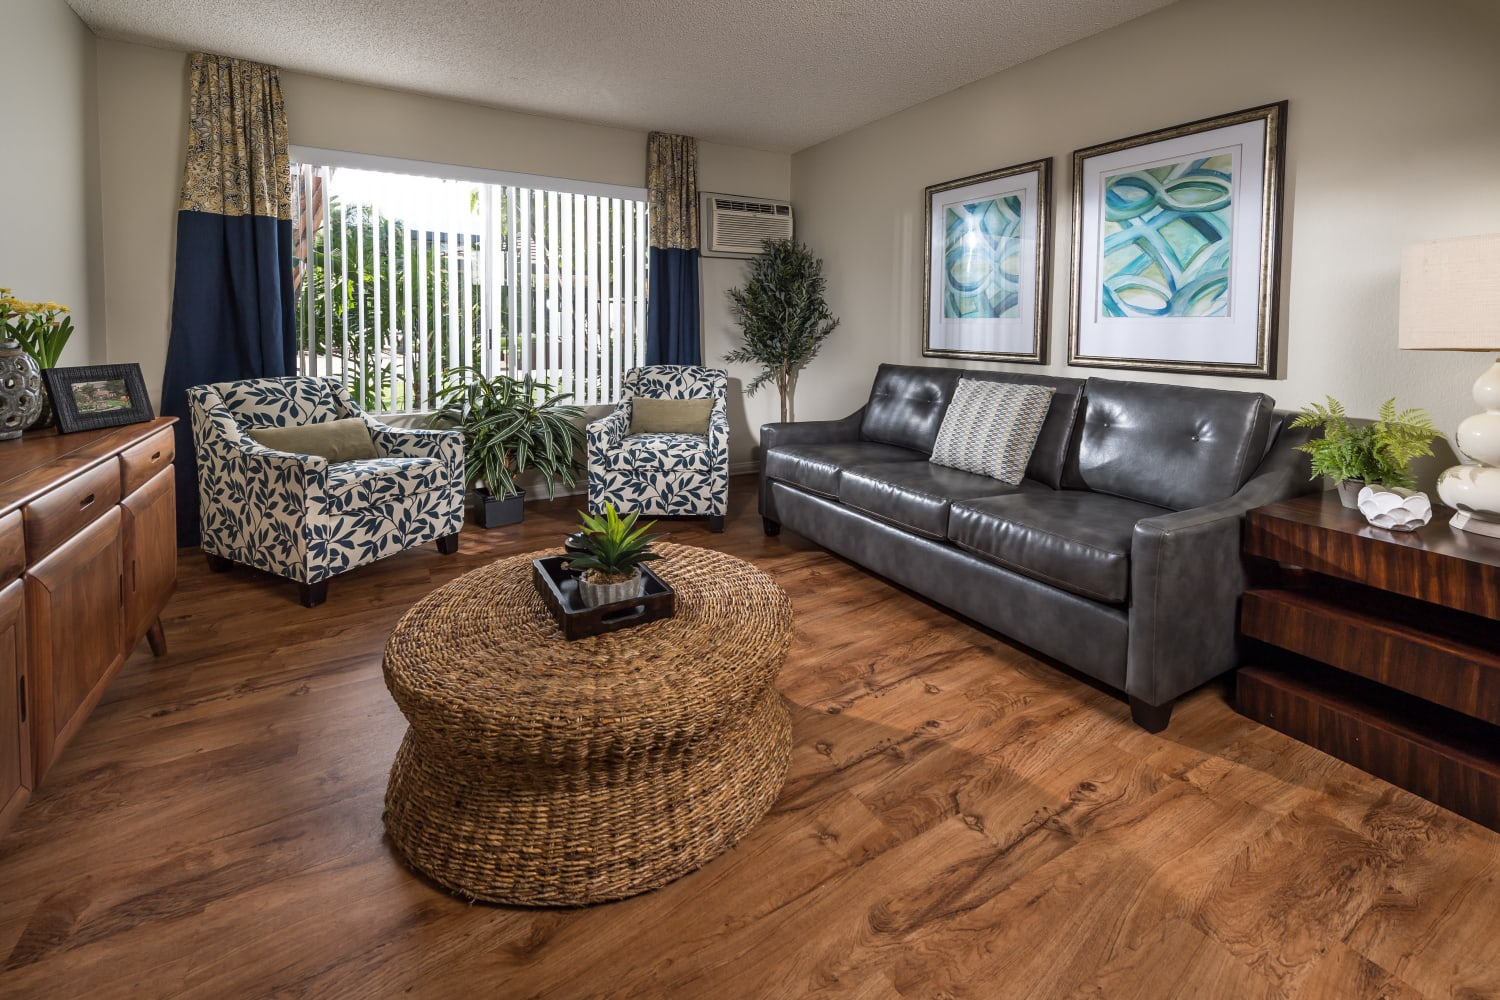 Spacious living rooms at UCE Apartment Homes in Fullerton, California, complete with hardwood floors